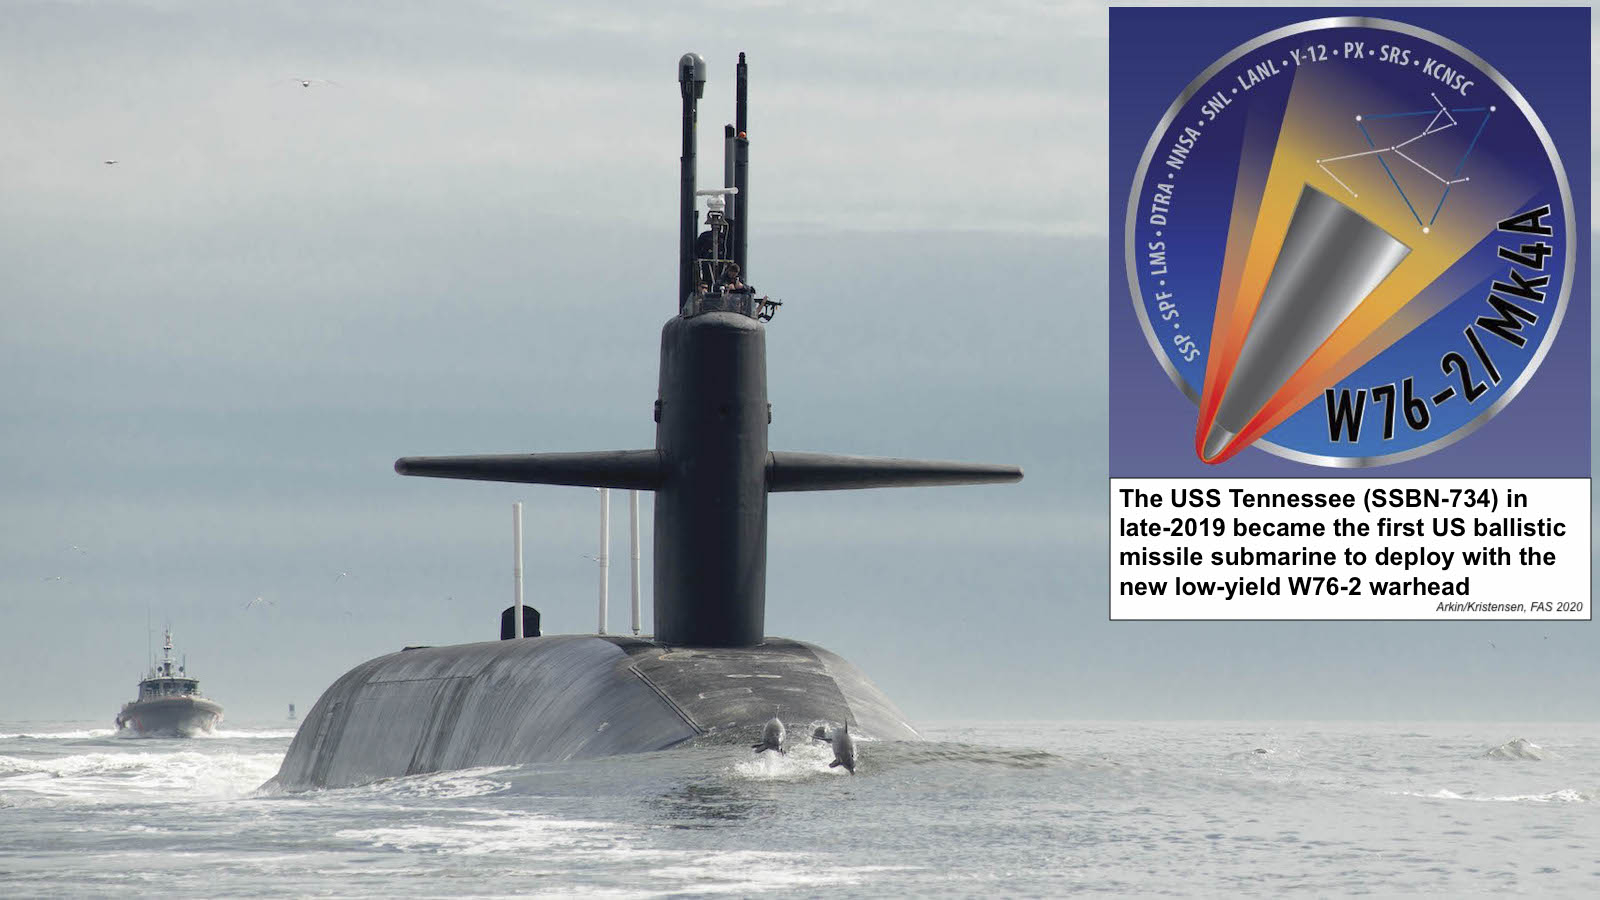 The US Deployed Its New W76-2 Tactical Nuclear Submarine Warhead